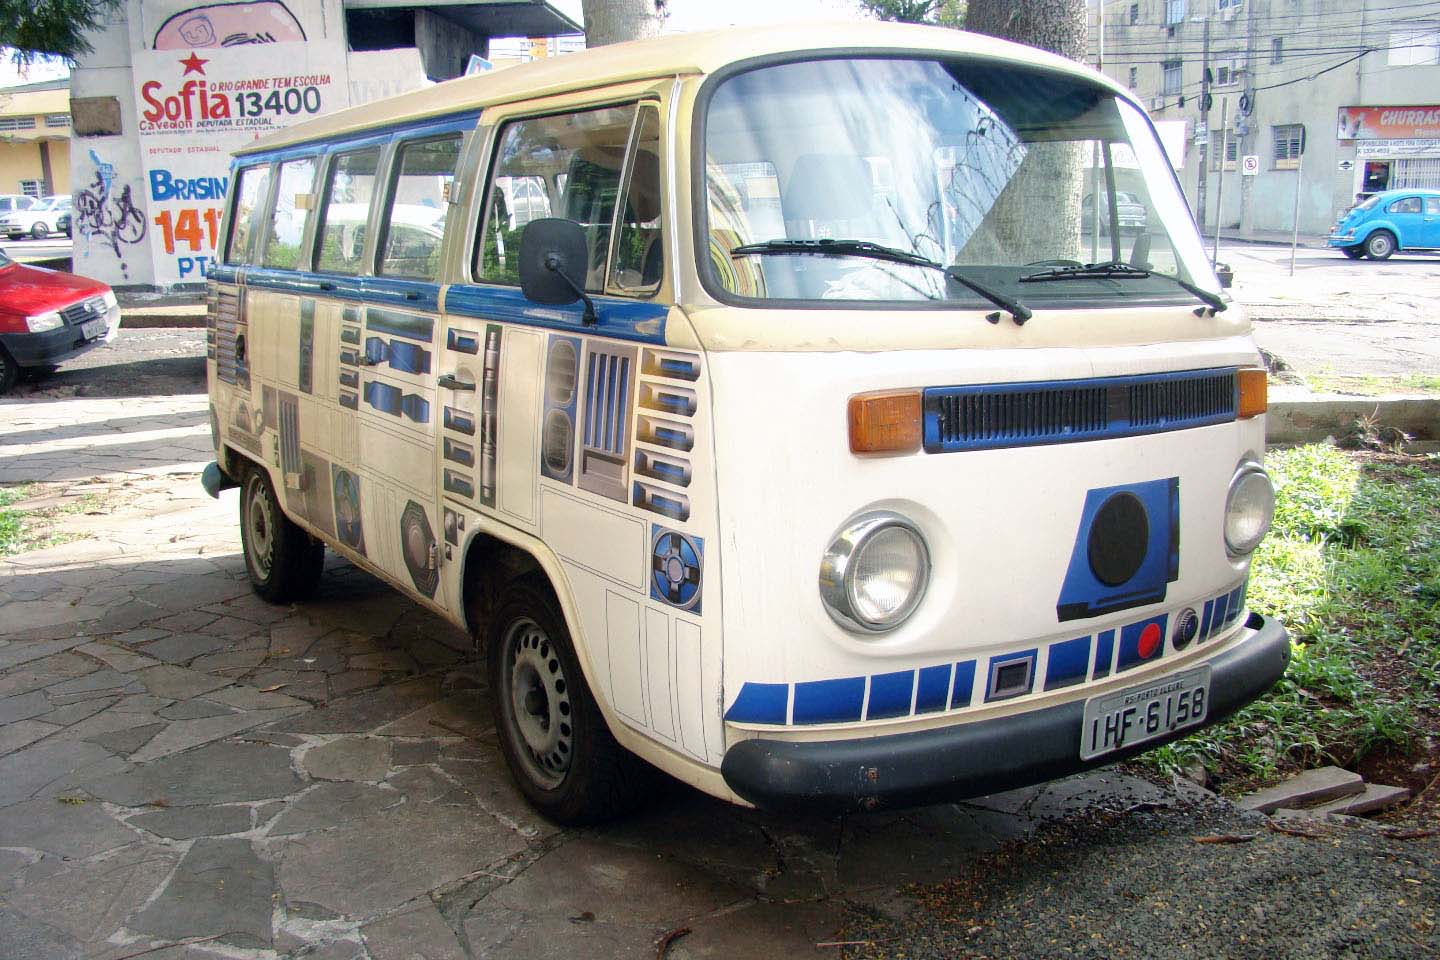 The Volkswagen Bus is a ubiquitous piece of the automotive landscape, especially in Brazil, where the vehicle stayed in production for many years past its Canadian expiration date. This R2D2-themed version of the VW Bus takes advantage of its oval-like shape and simple lines to highlight the droid's blue details. A work in progress, the impressive detail was accomplished with a three-foot wide vinyl wrap.